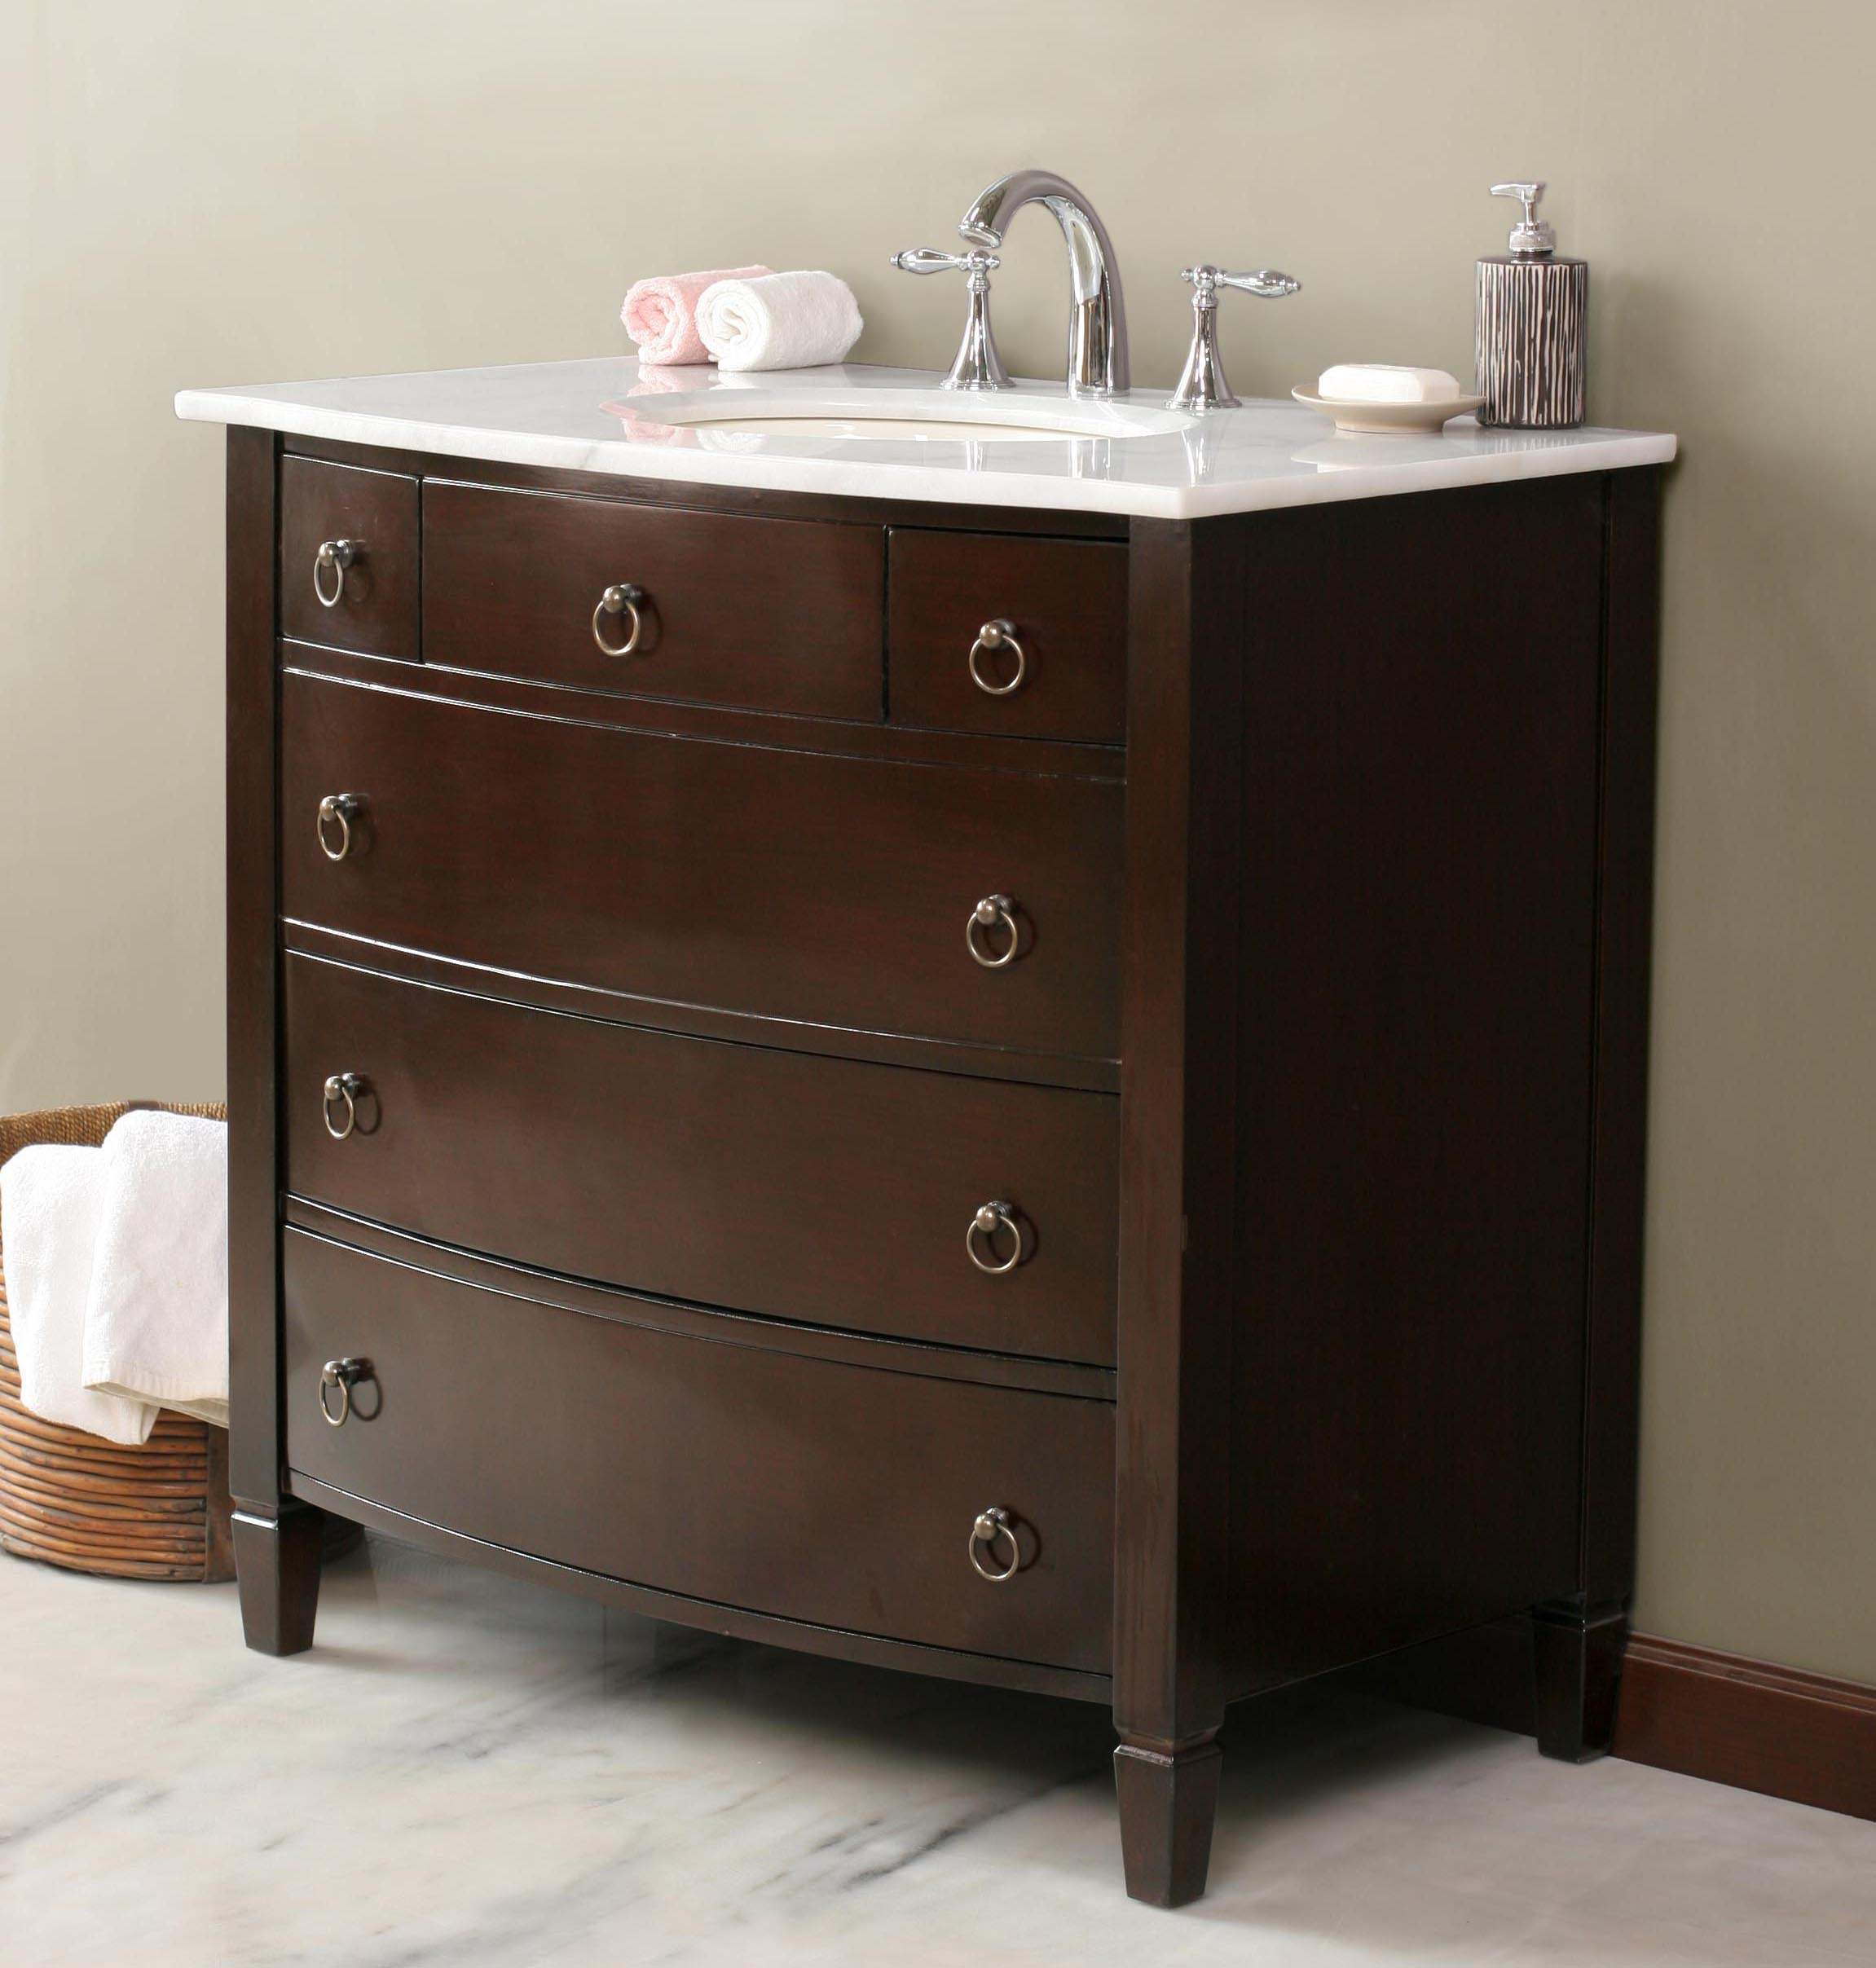 27 Inch Bathroom Vanities: Transitional Style Vanity